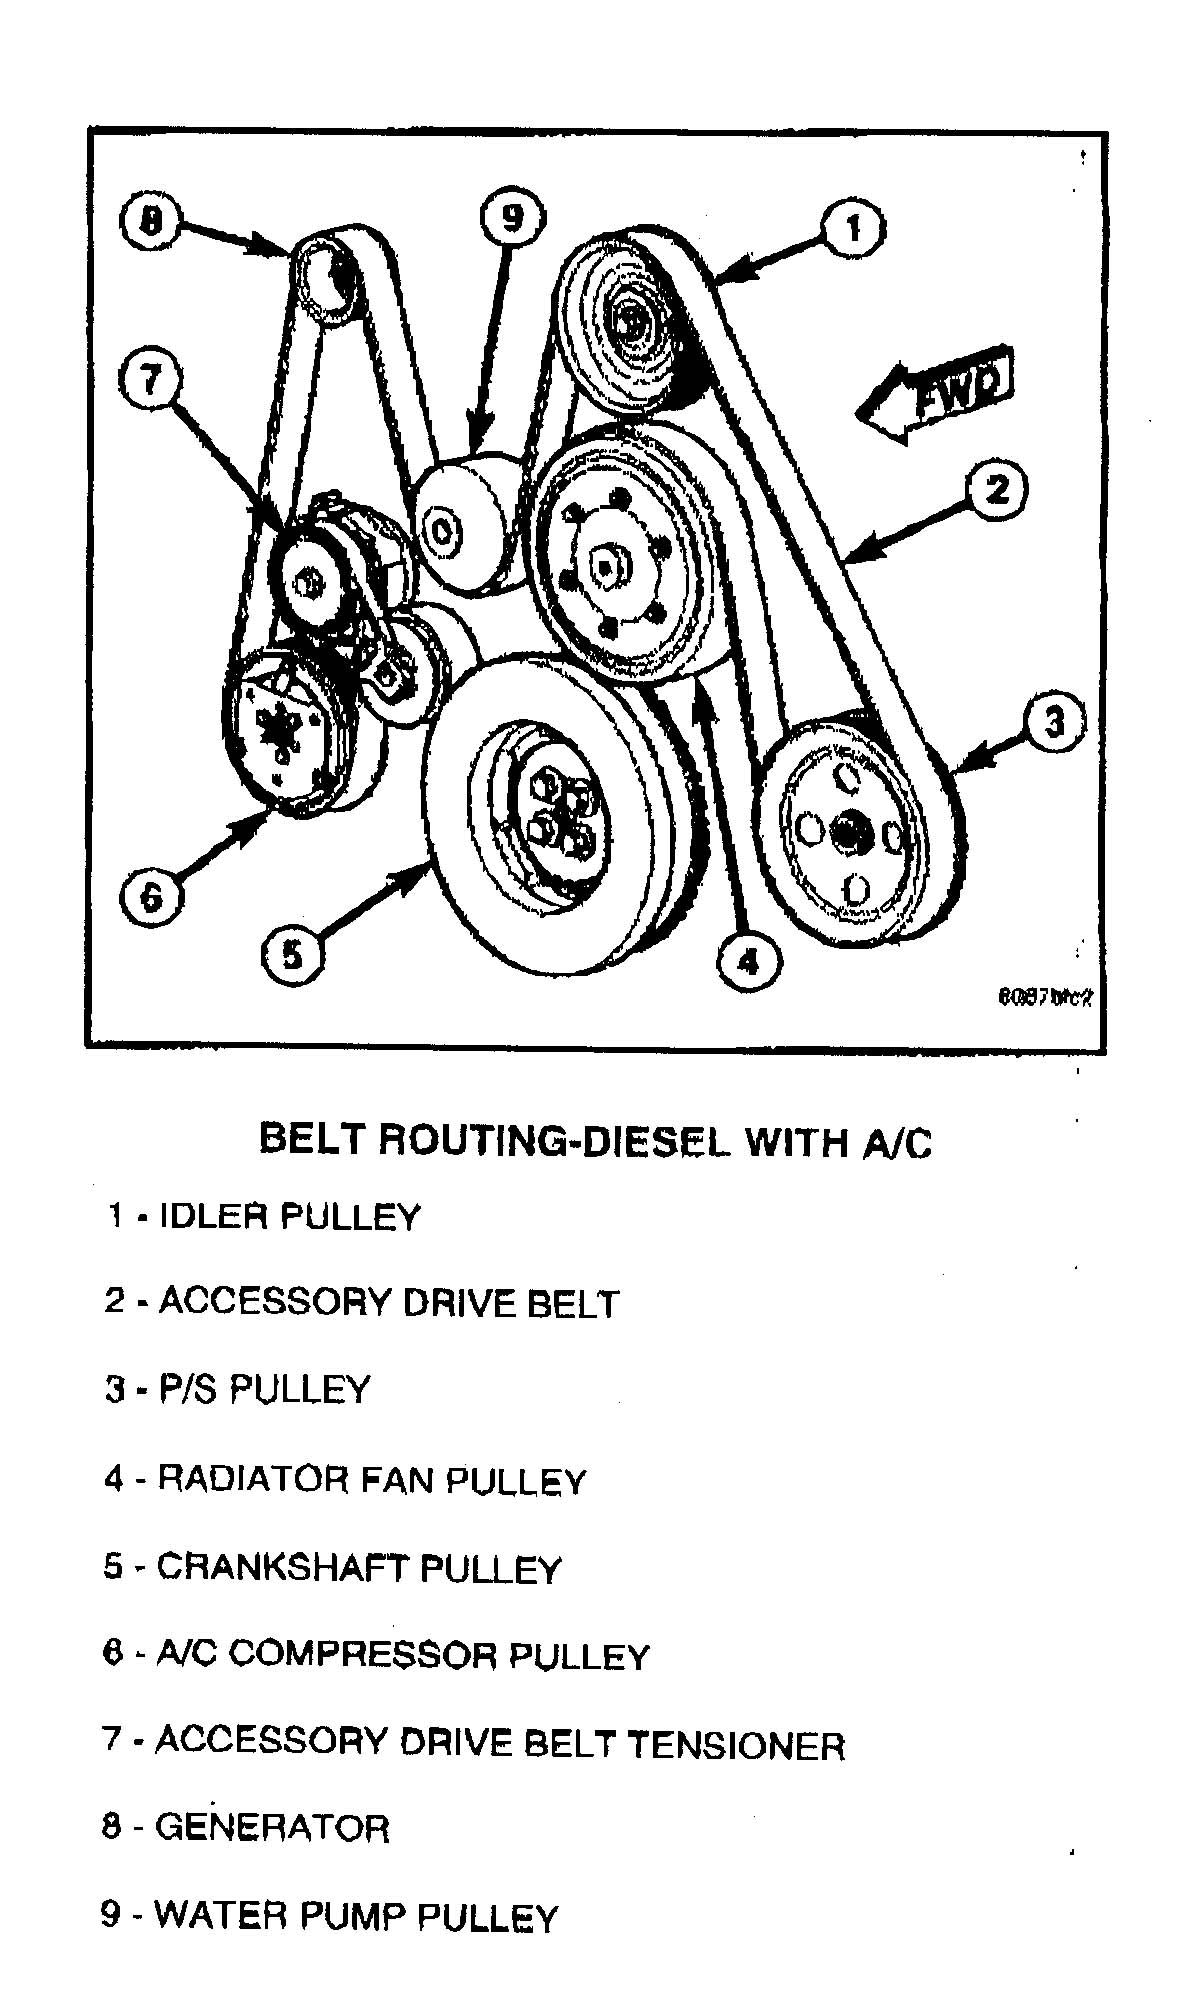 hight resolution of 6 7 belt routing diagram dodge diesel diesel truck resource forums